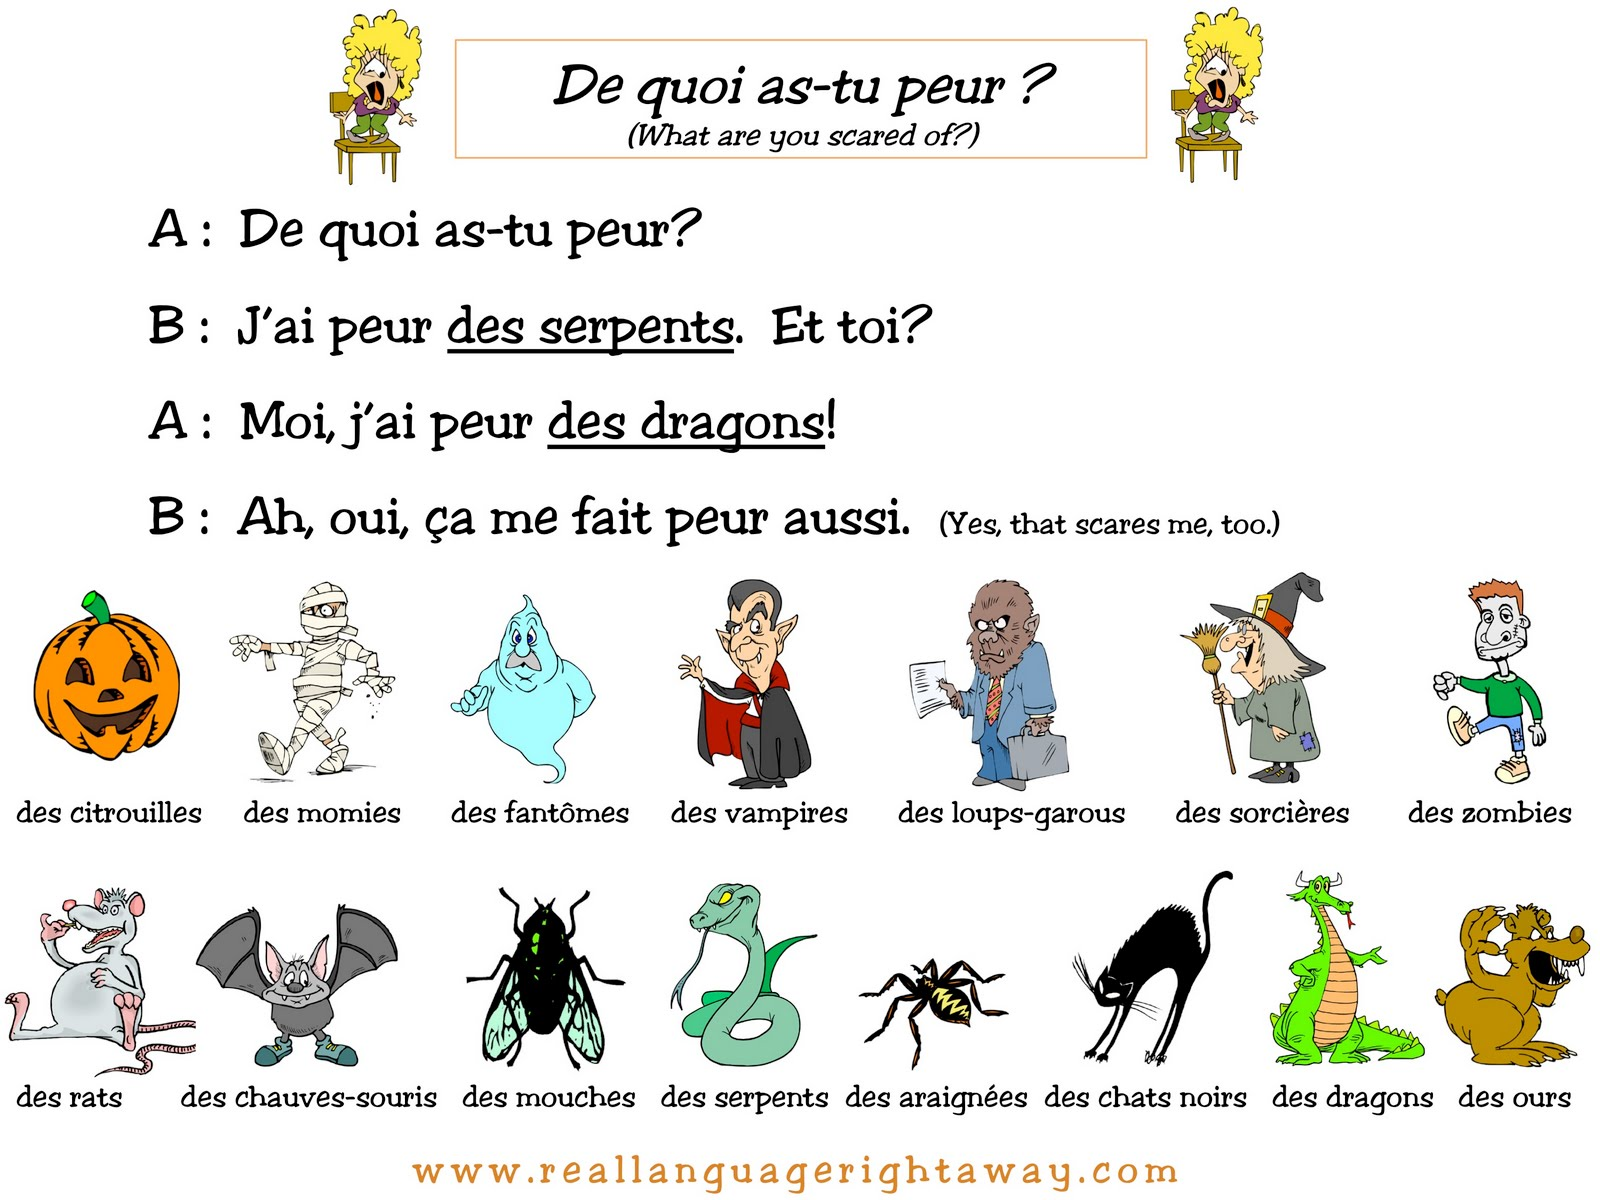 Real Language Right Away Halloween Conversations Try